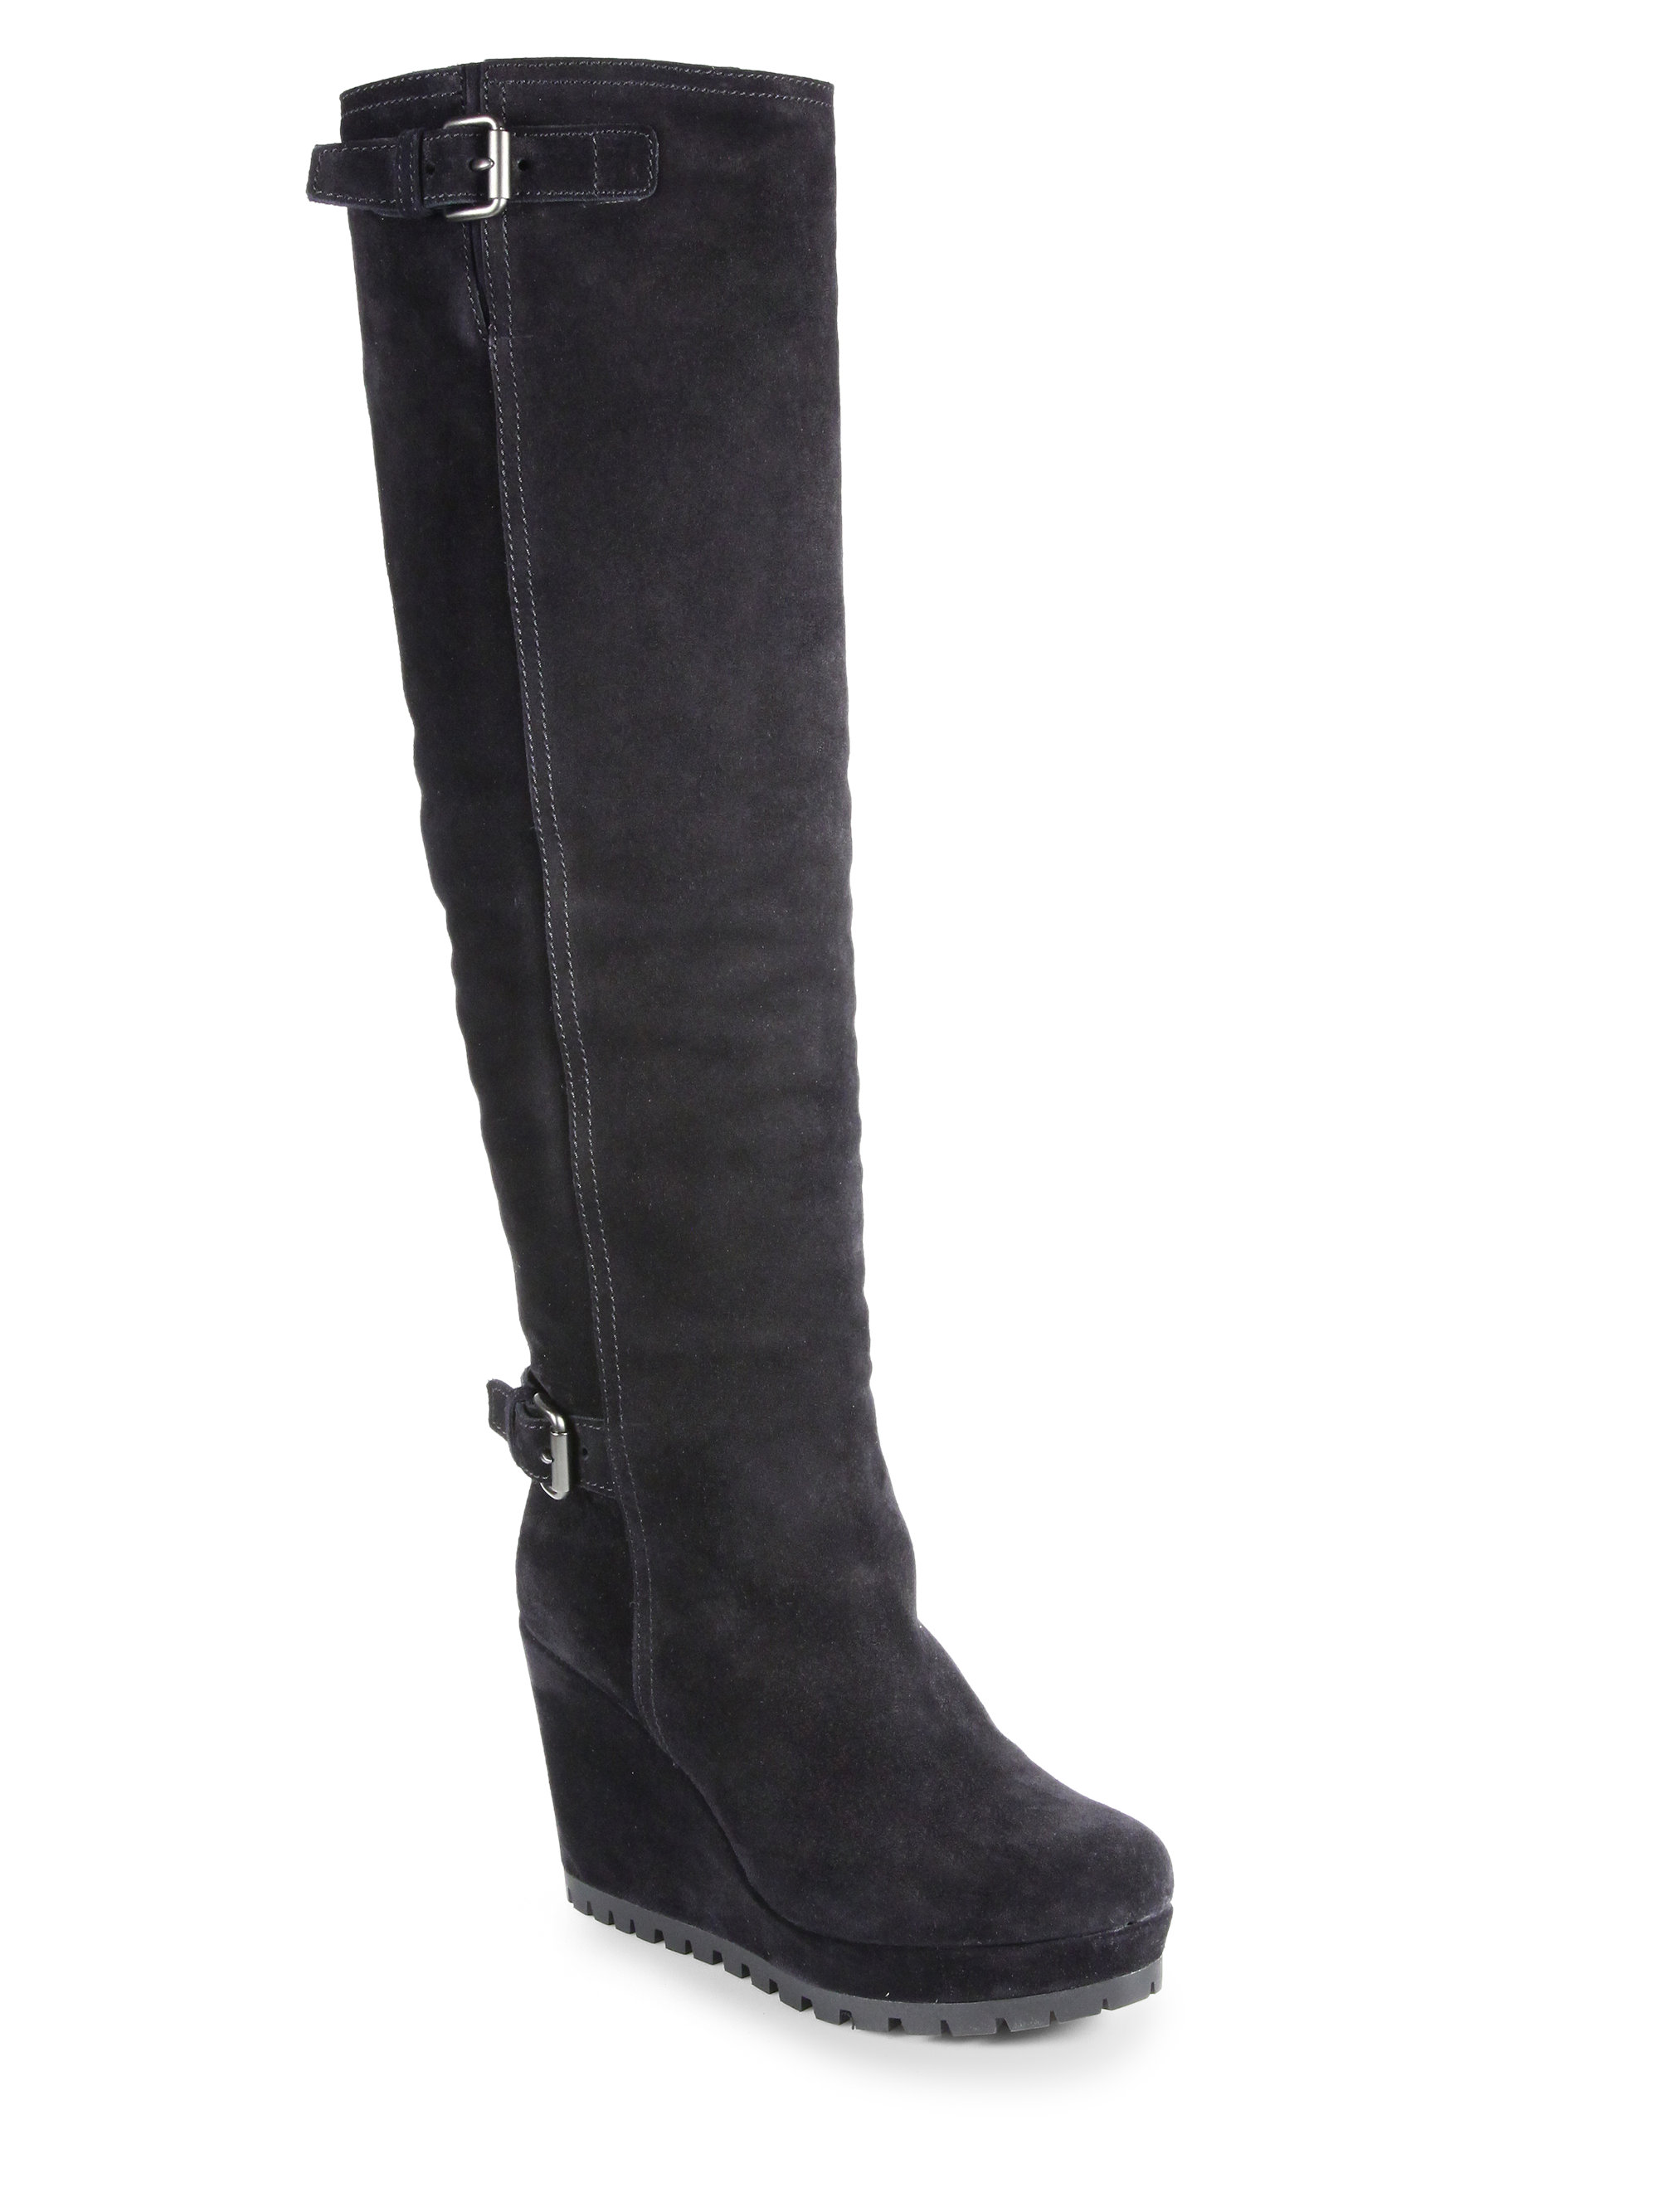 prada suede kneehigh wedge boots in black nero black lyst